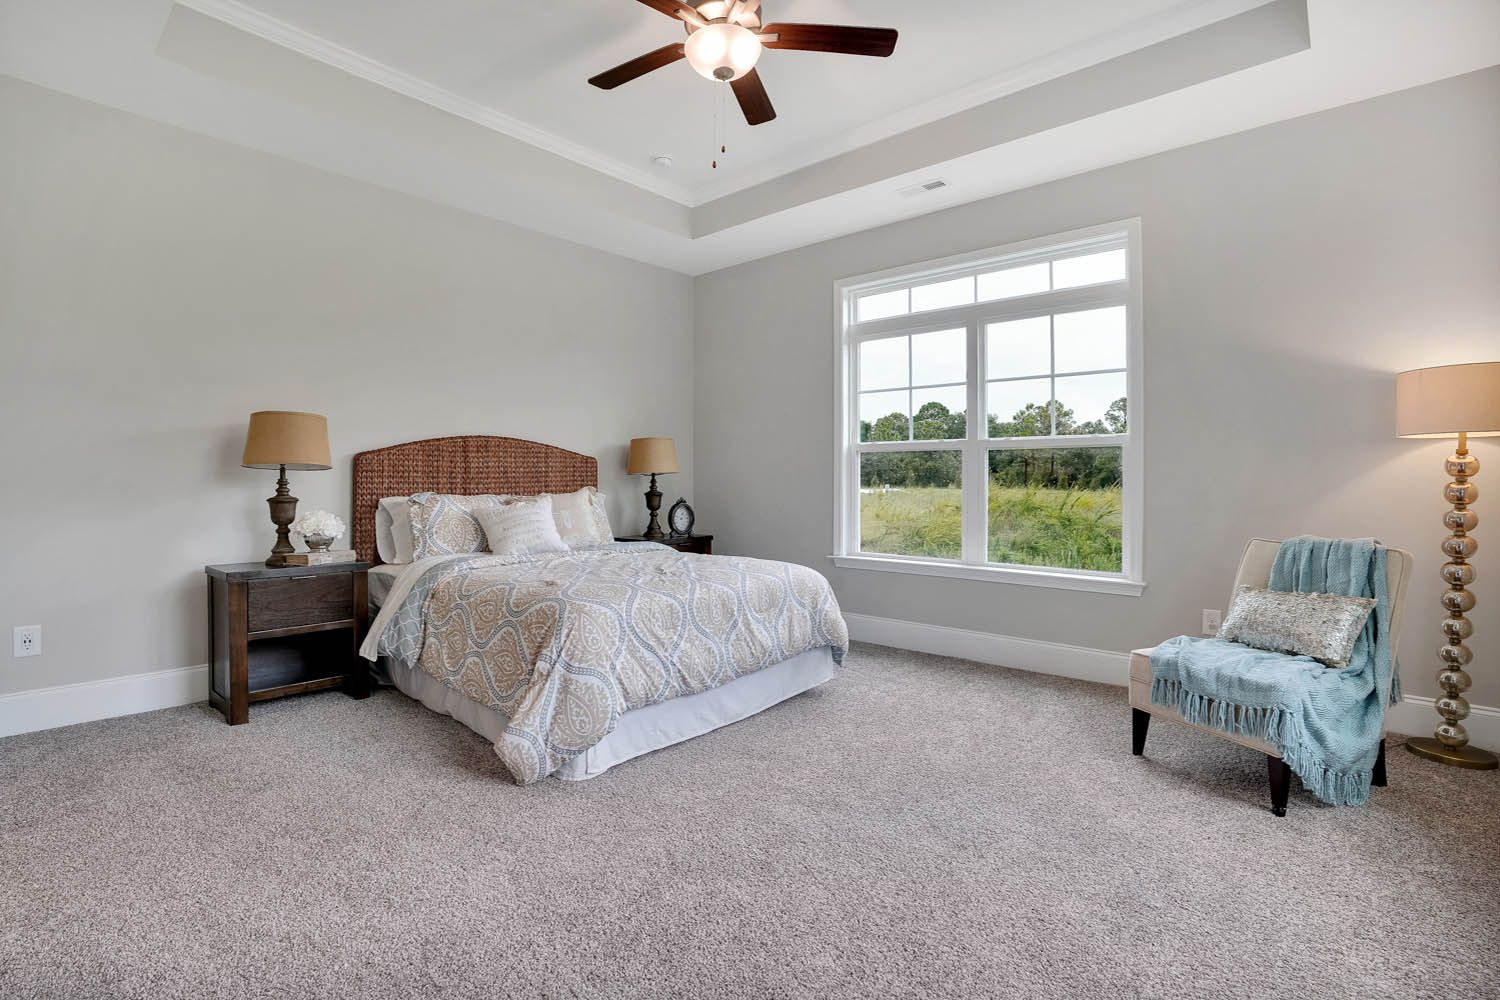 Bedroom featured in the Salerno Craftsman By McKee Homes in Wilmington, NC